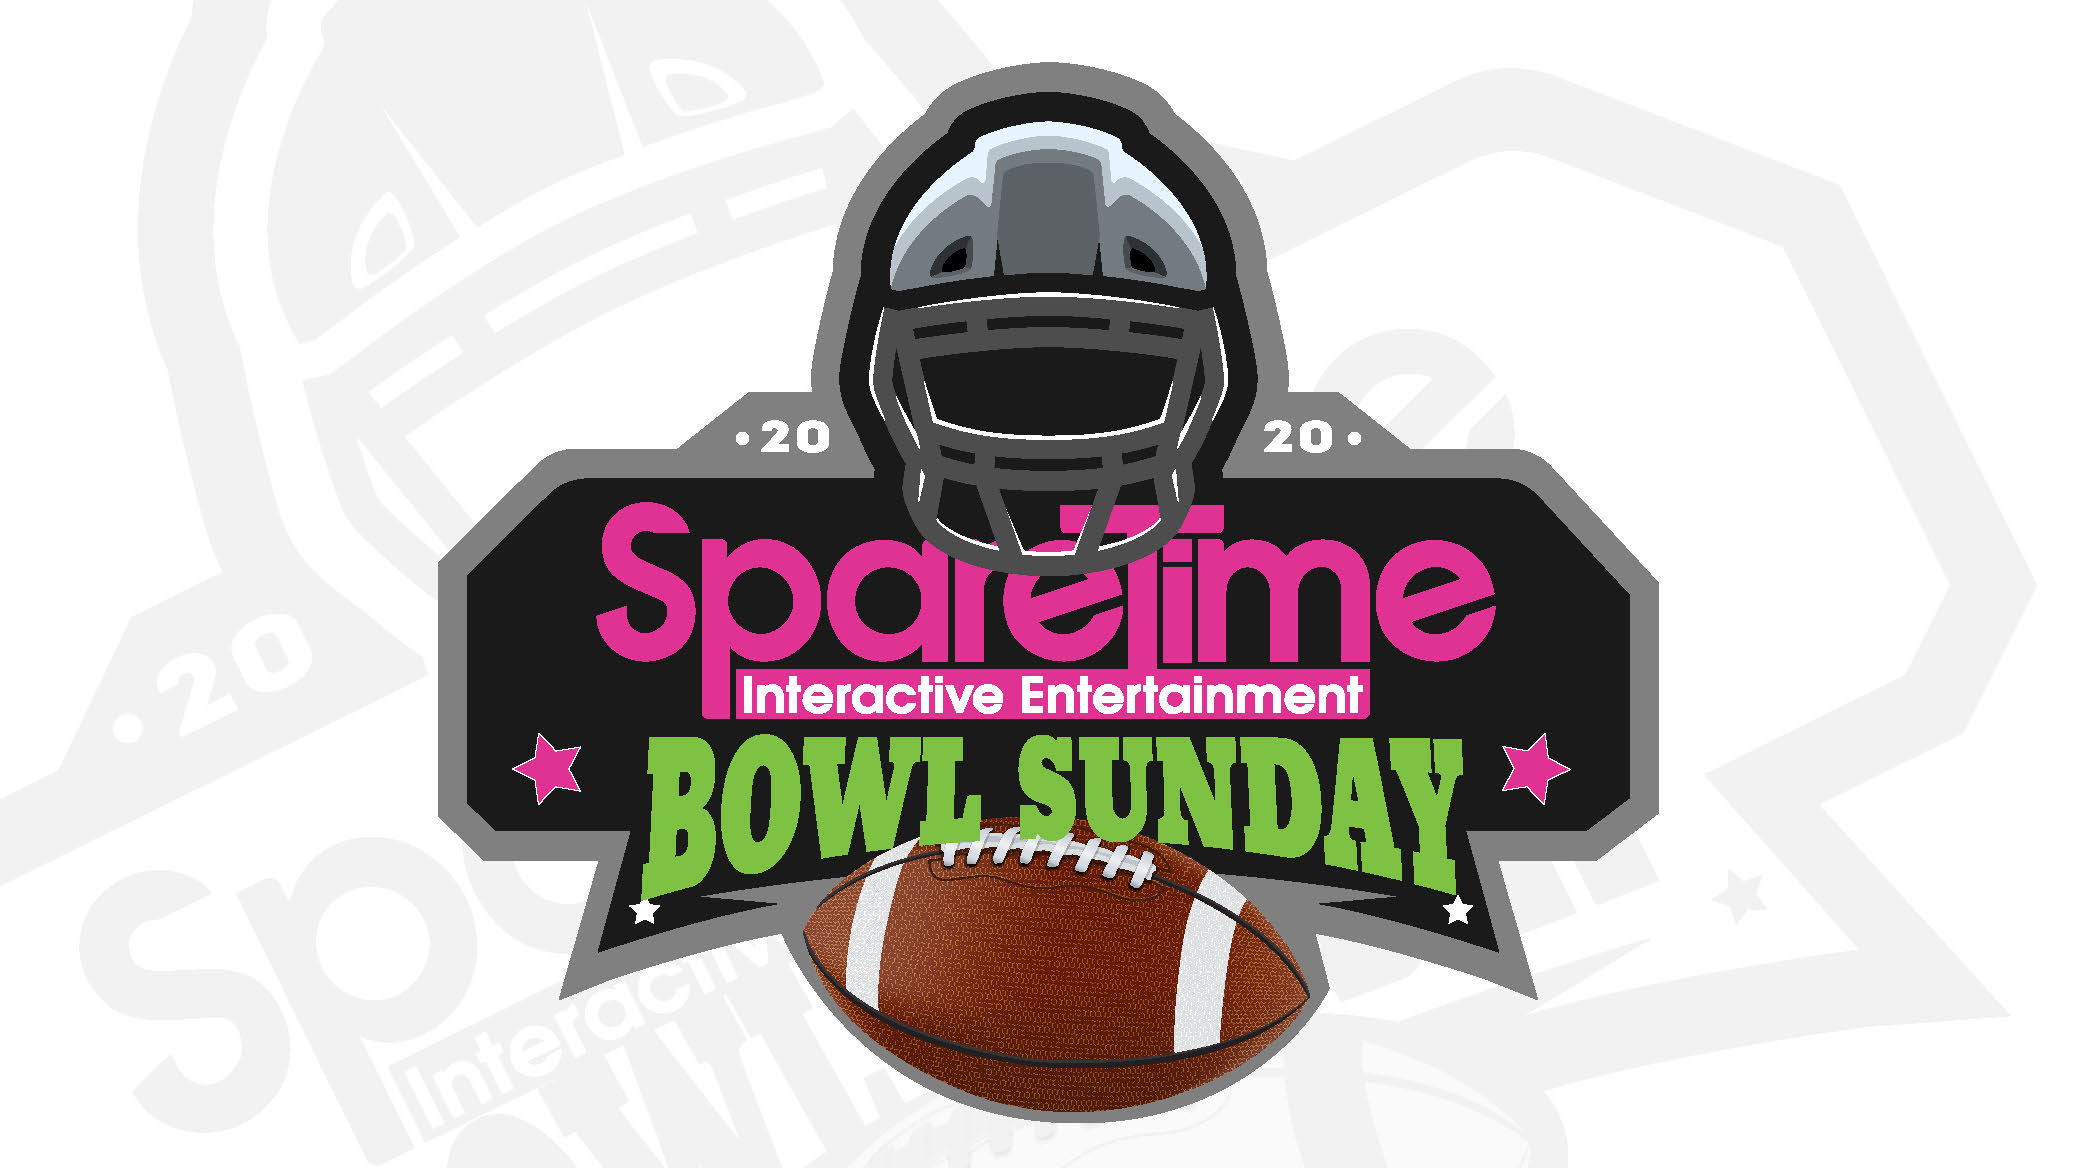 SpareTime Bowl Sunday